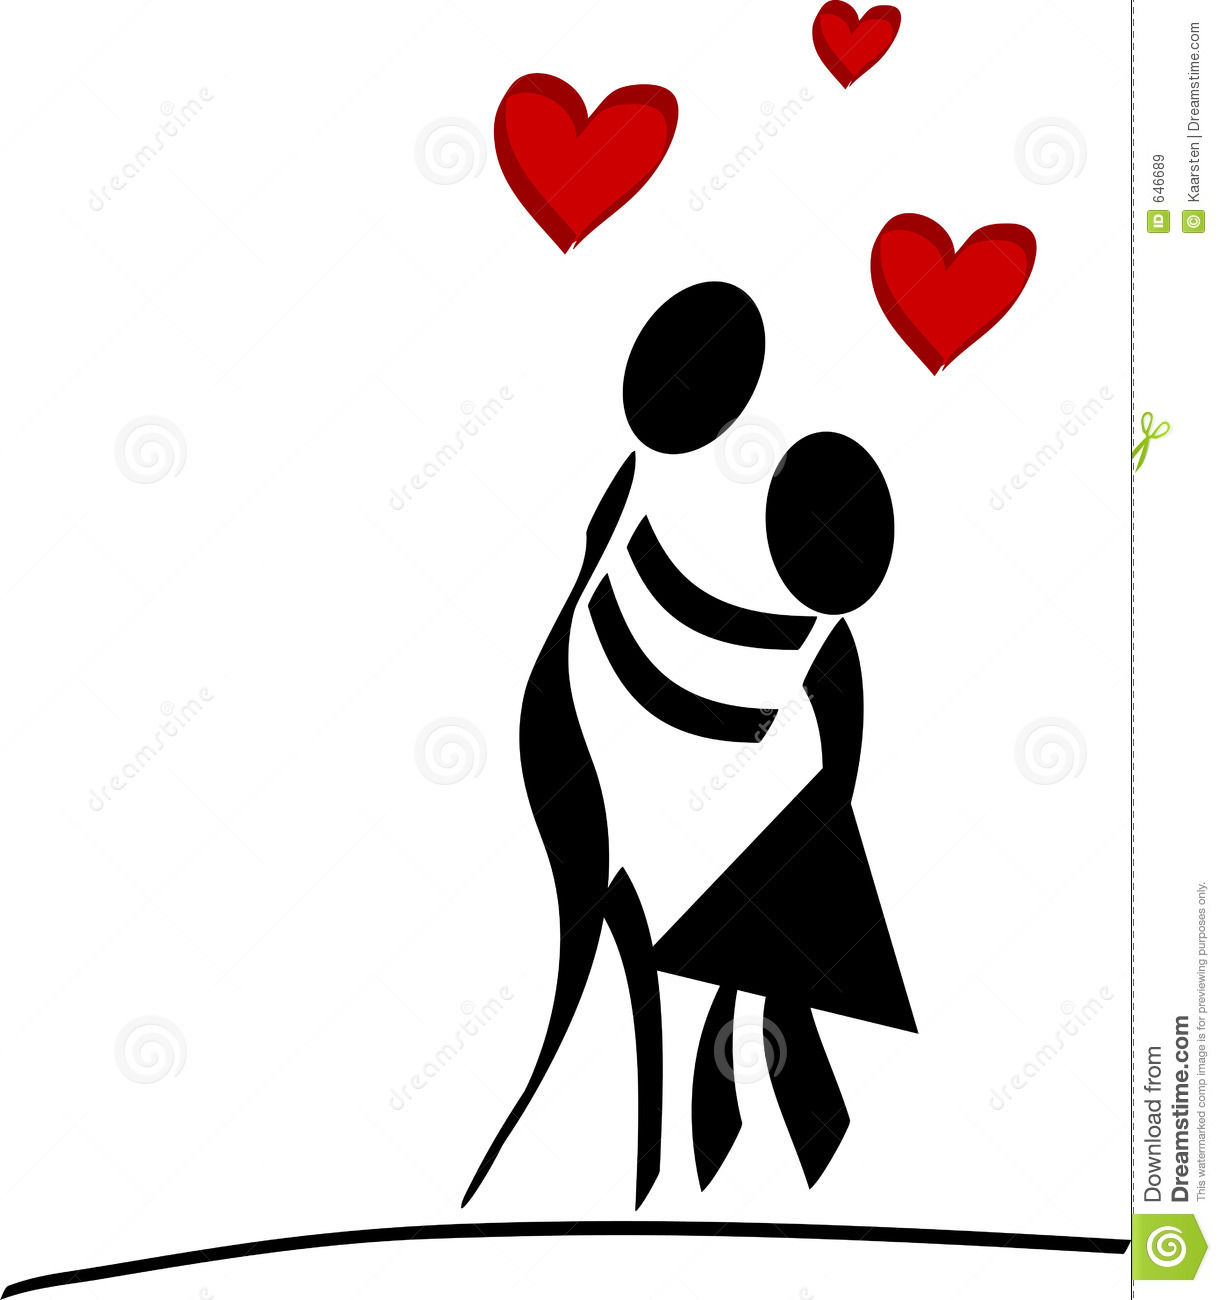 Love affair clipart.